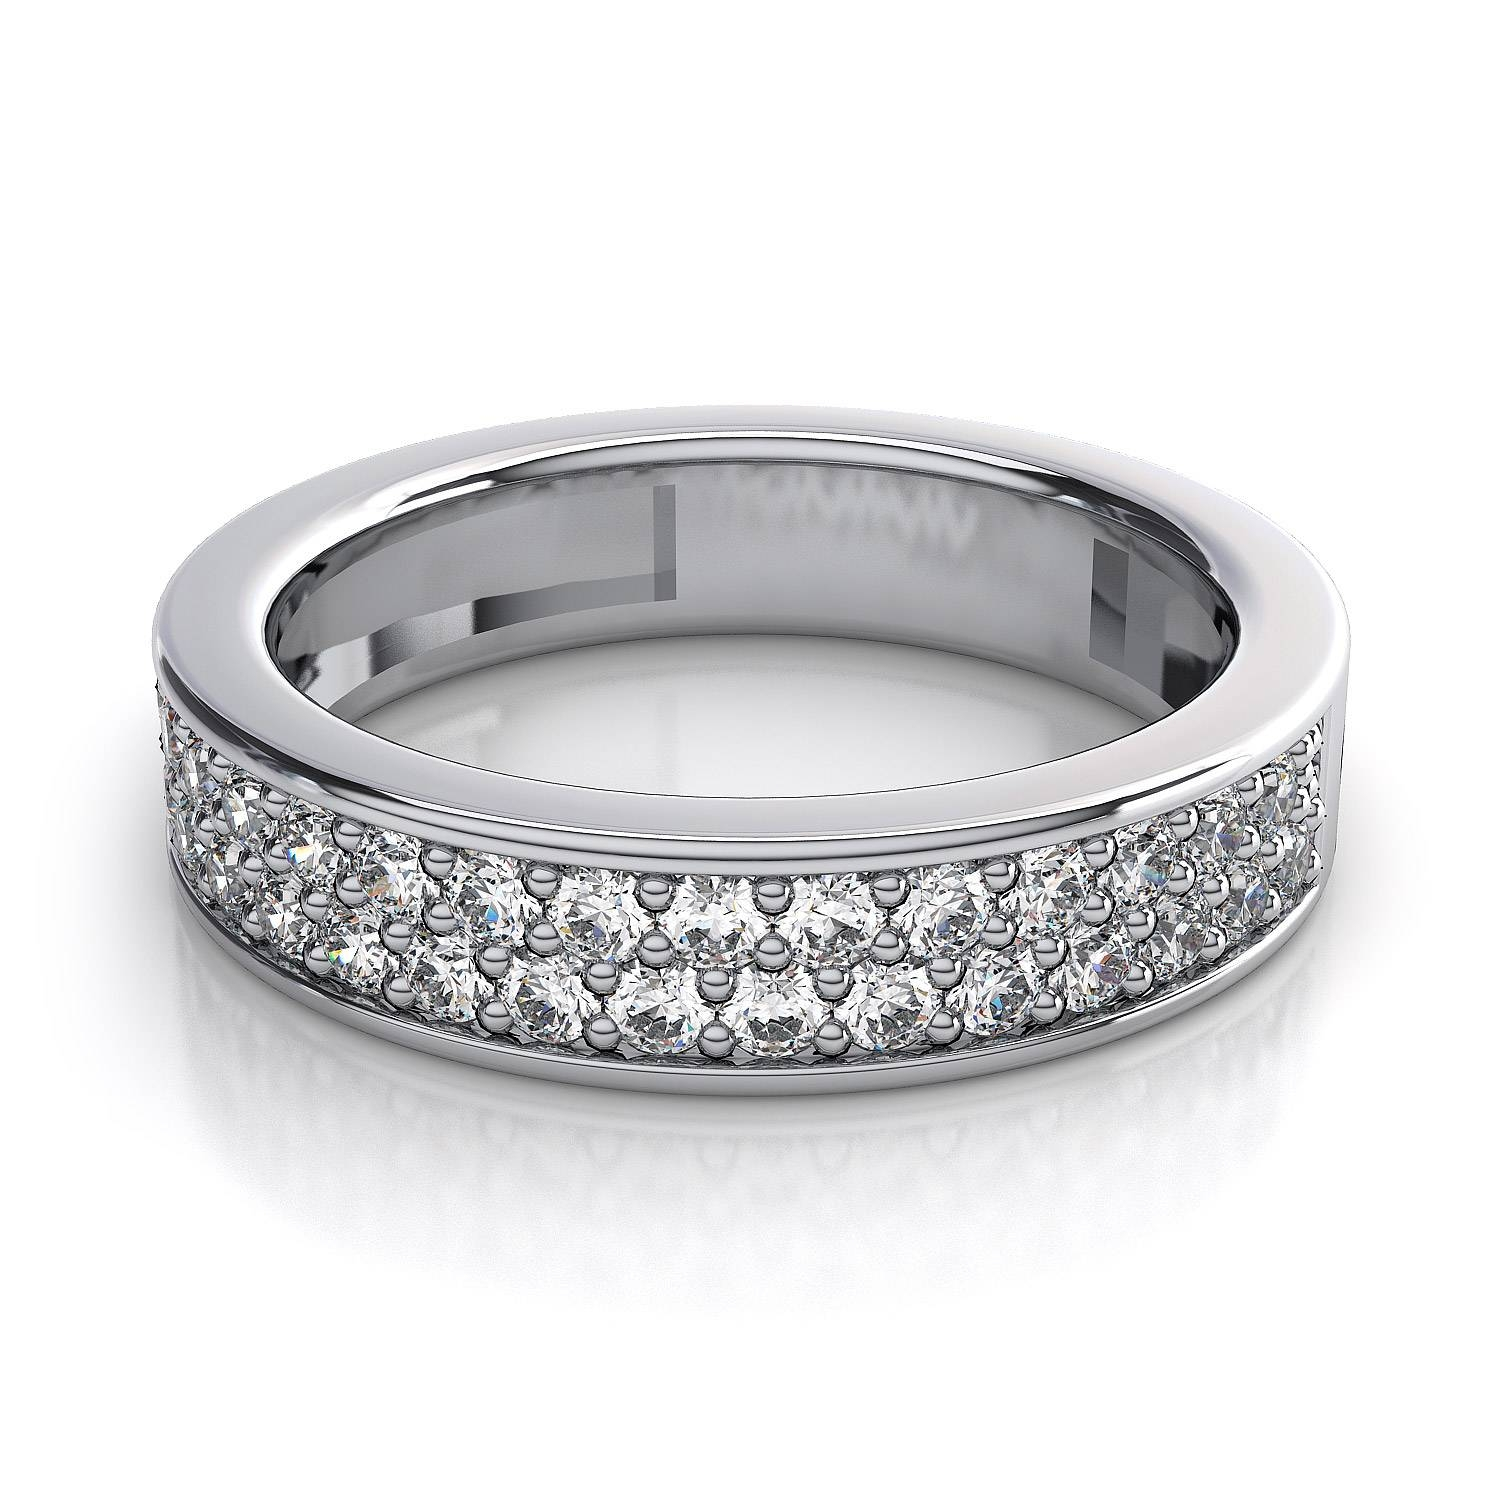 65 Carat Women's Rings Pave Diamond Wedding Ring In Platinum Pertaining To Womens Platinum Wedding Rings (View 4 of 15)